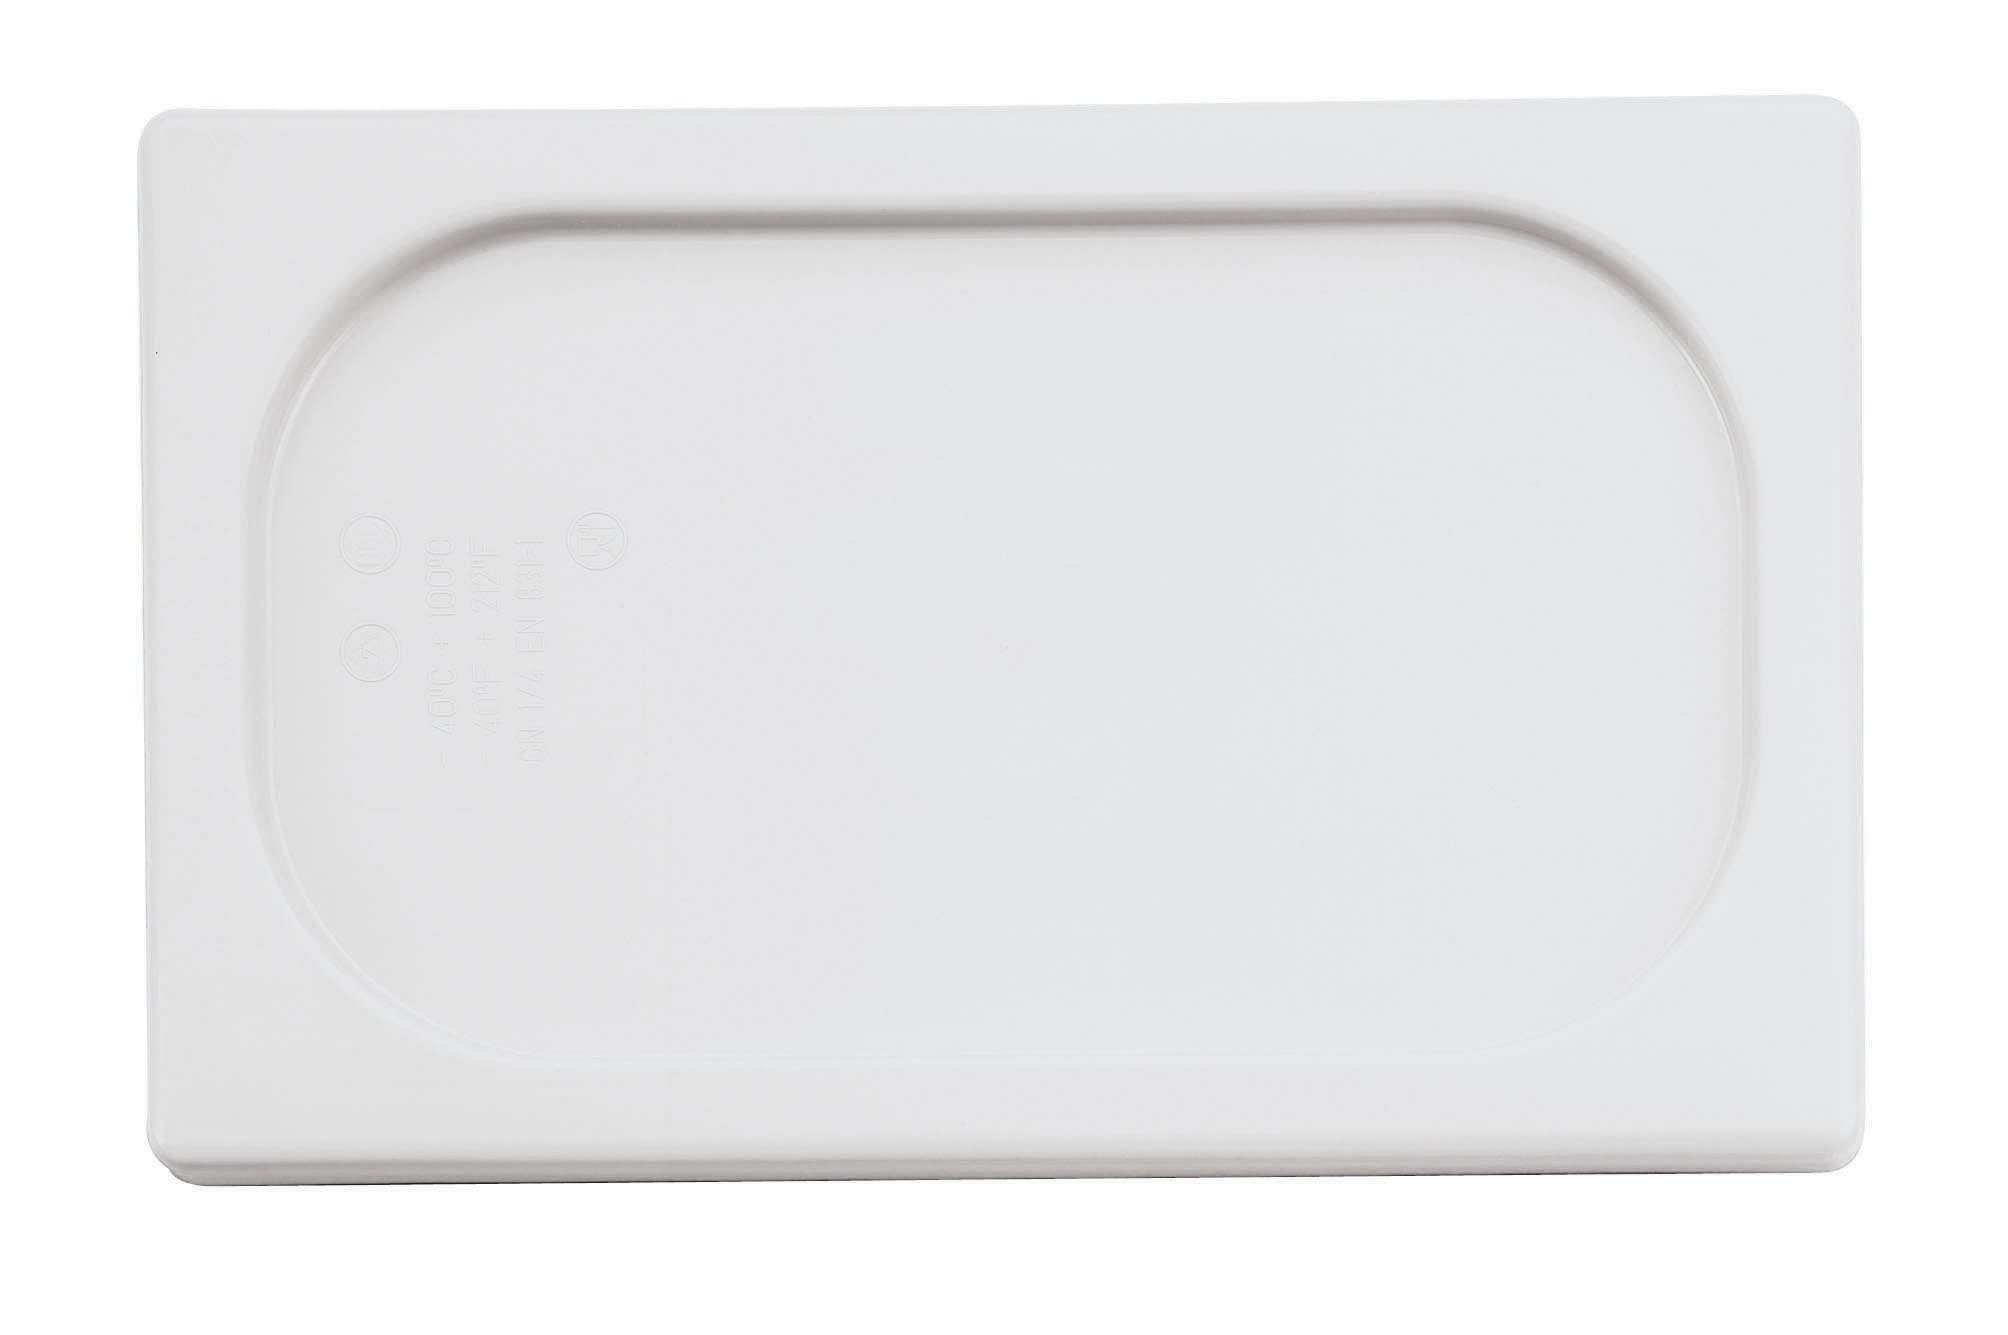 Paderno World Cuisine 20 7/8 inches by 12 3/4 inches Clear Polypropylene Hotel Food Pan Lid - 1/1